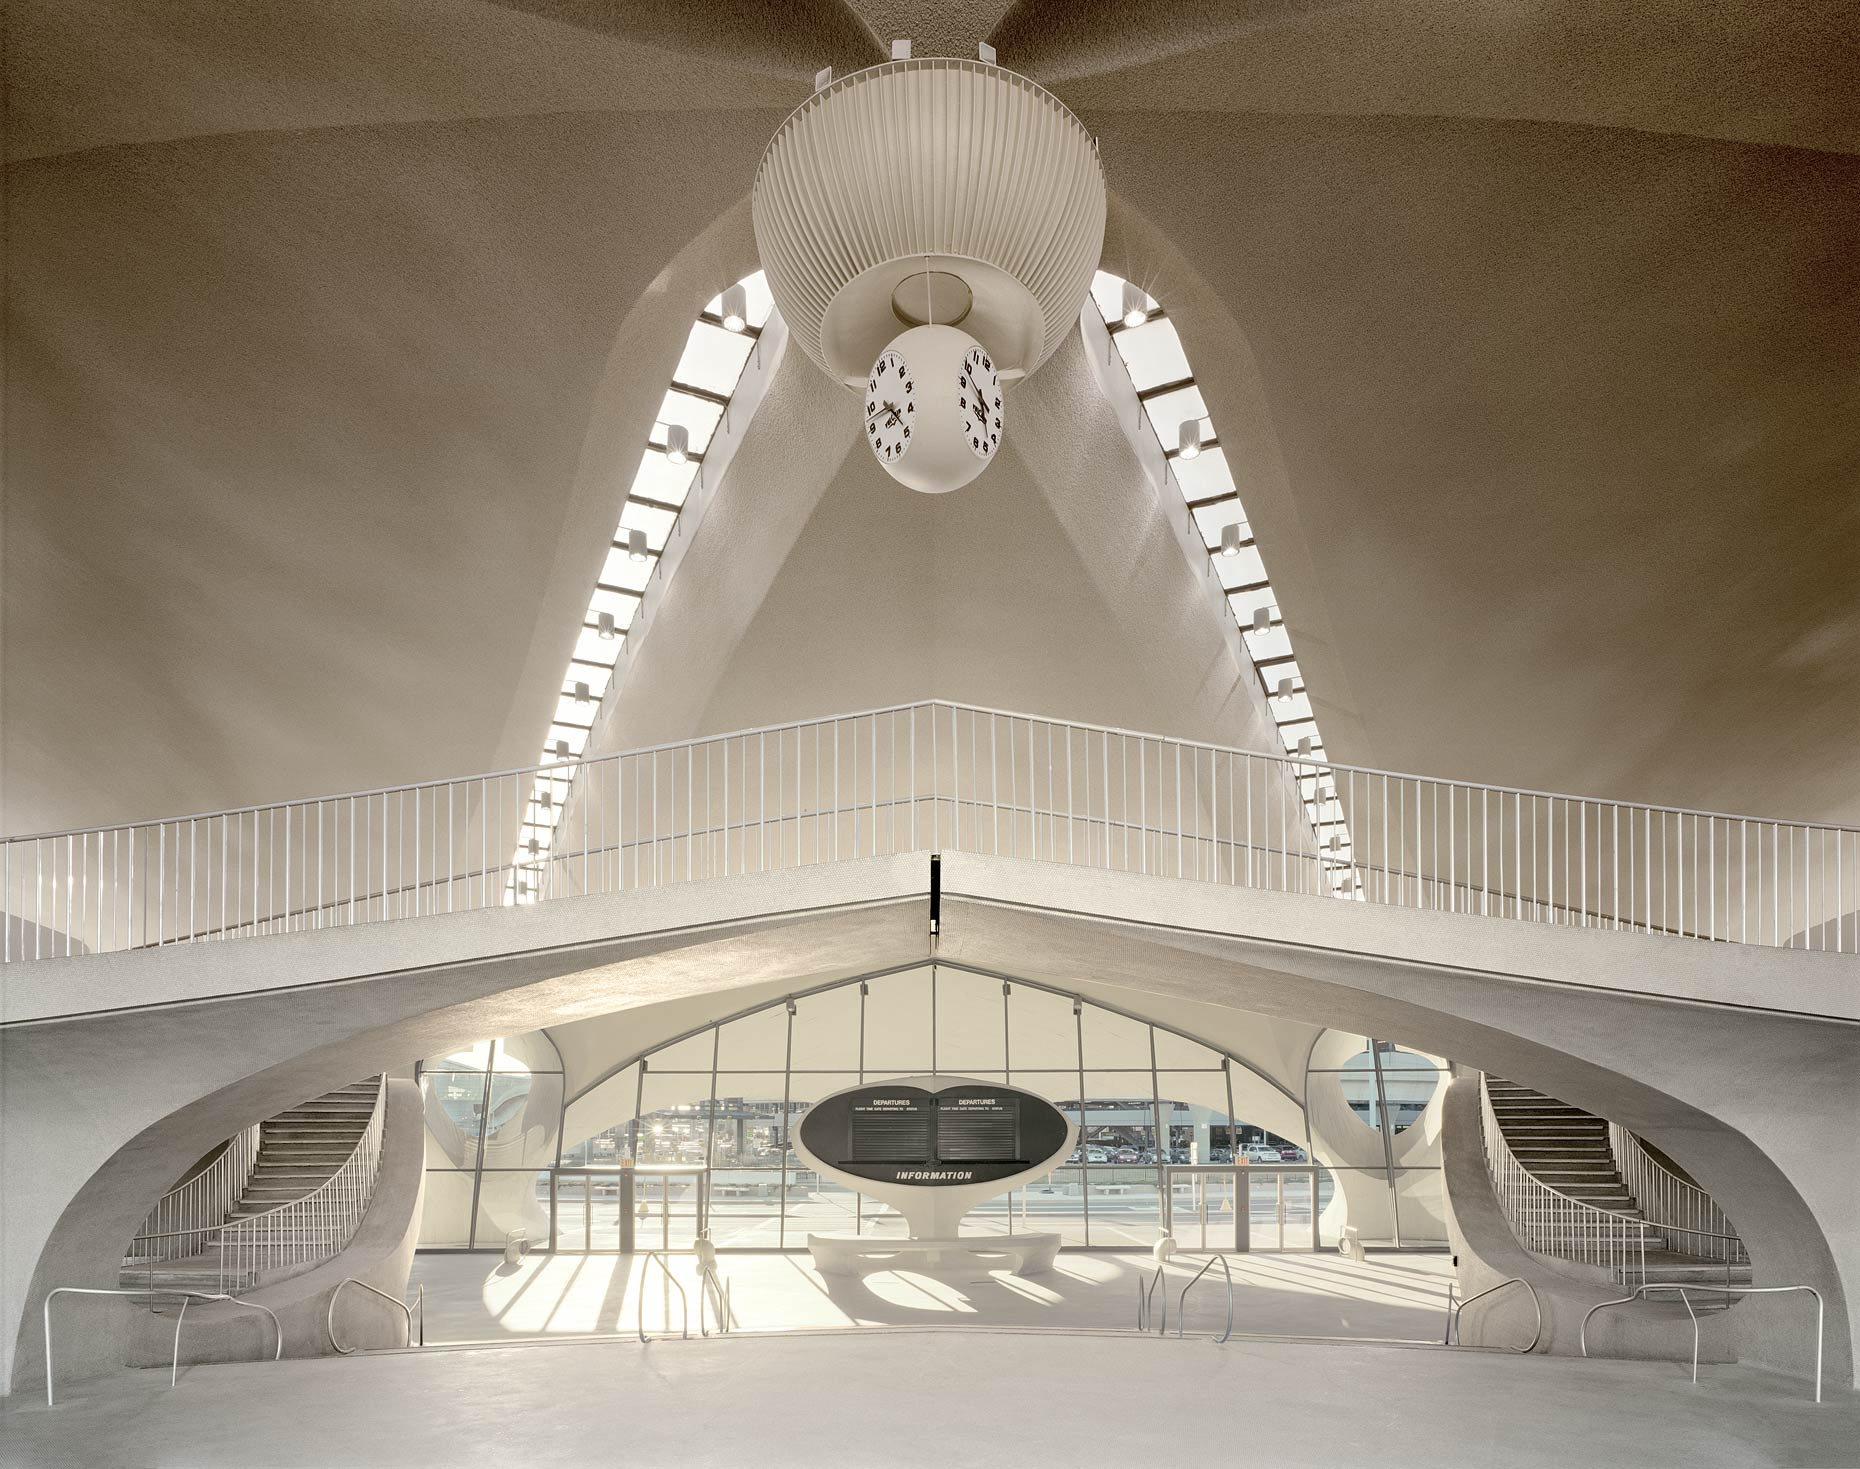 TWA Terminal No. 3, JFK International Airport, Queens, New York, 2011